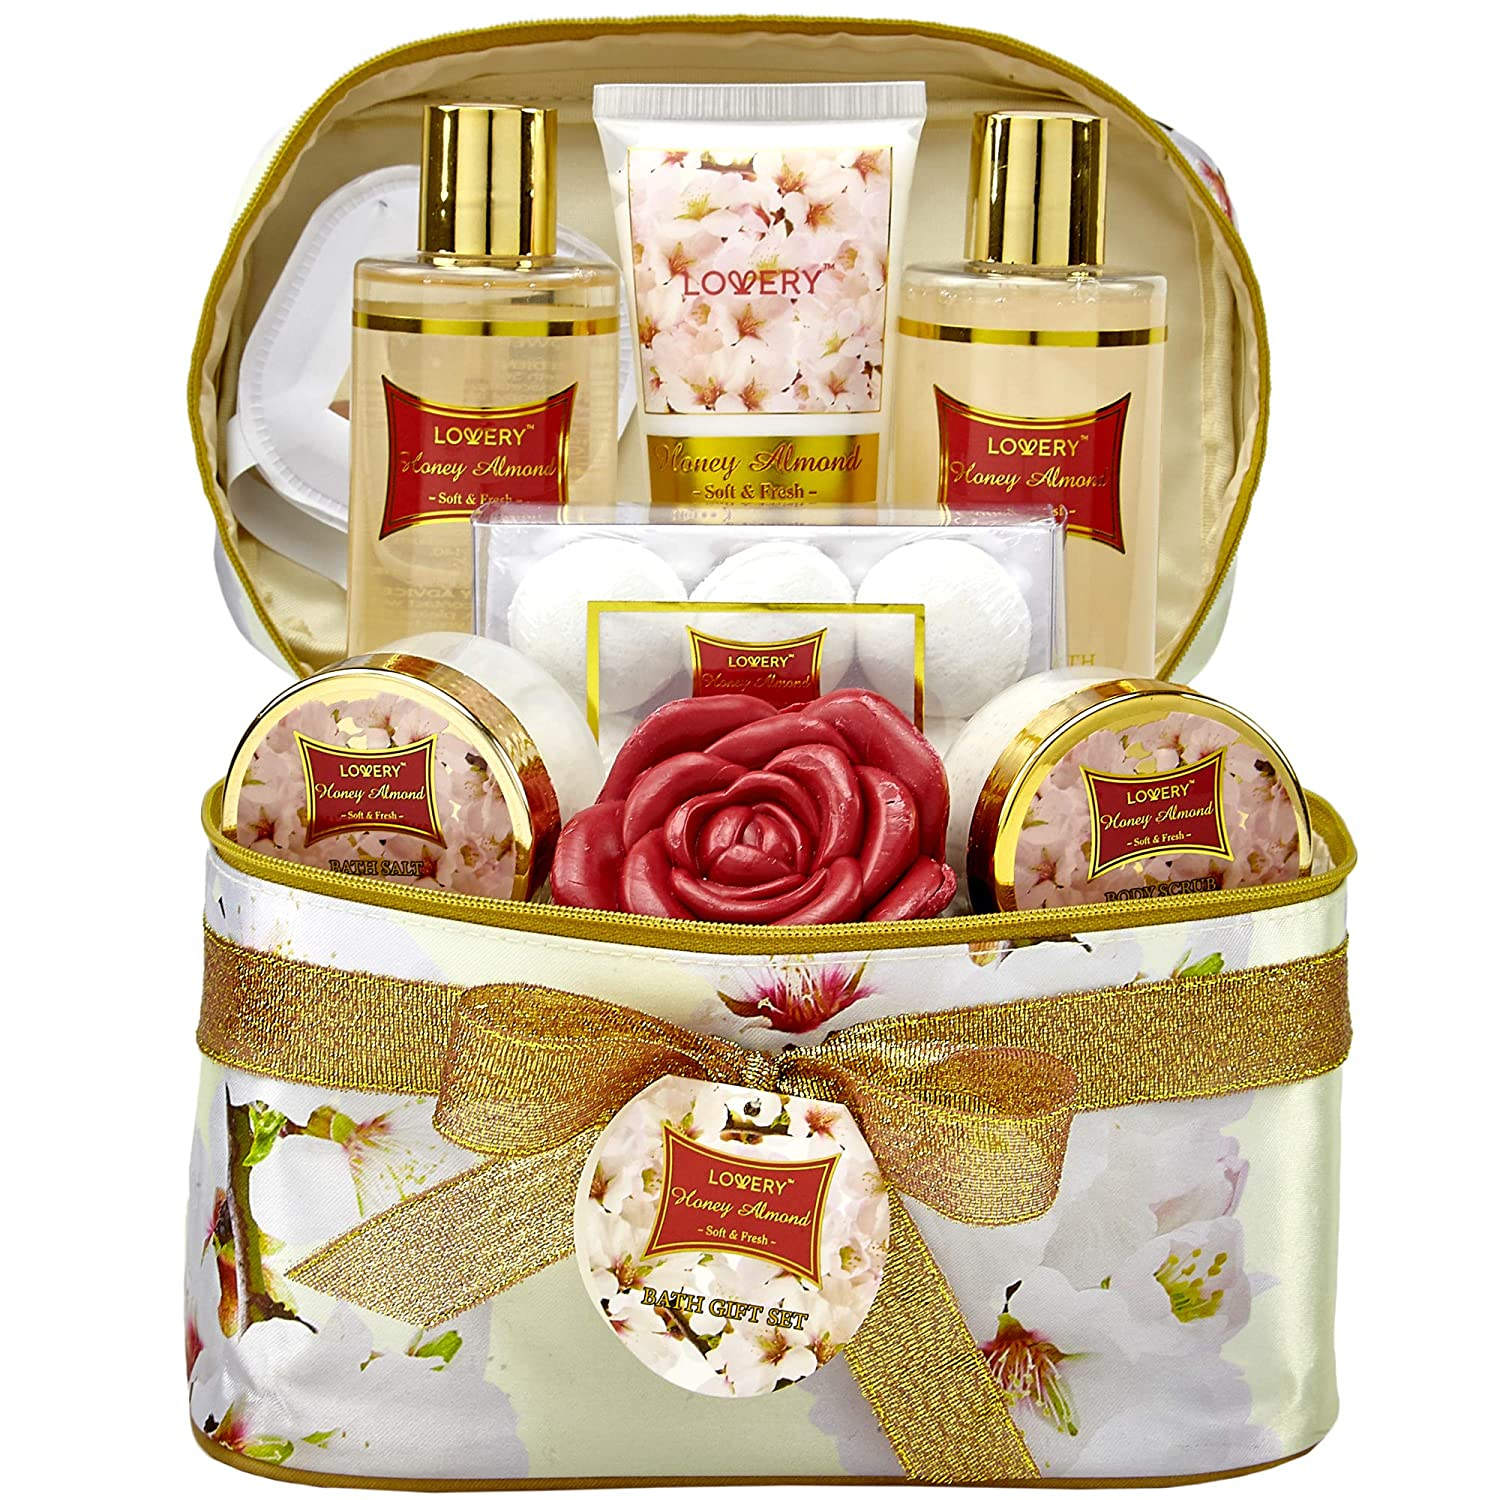 Bath and Body Gift Basket For Women   Honey Almond Home Spa Set with Fragrant Lotions  6 Bath Bombs  Reusable Travel Cosmetics Bag with Mirror and More - 14 Piece Set